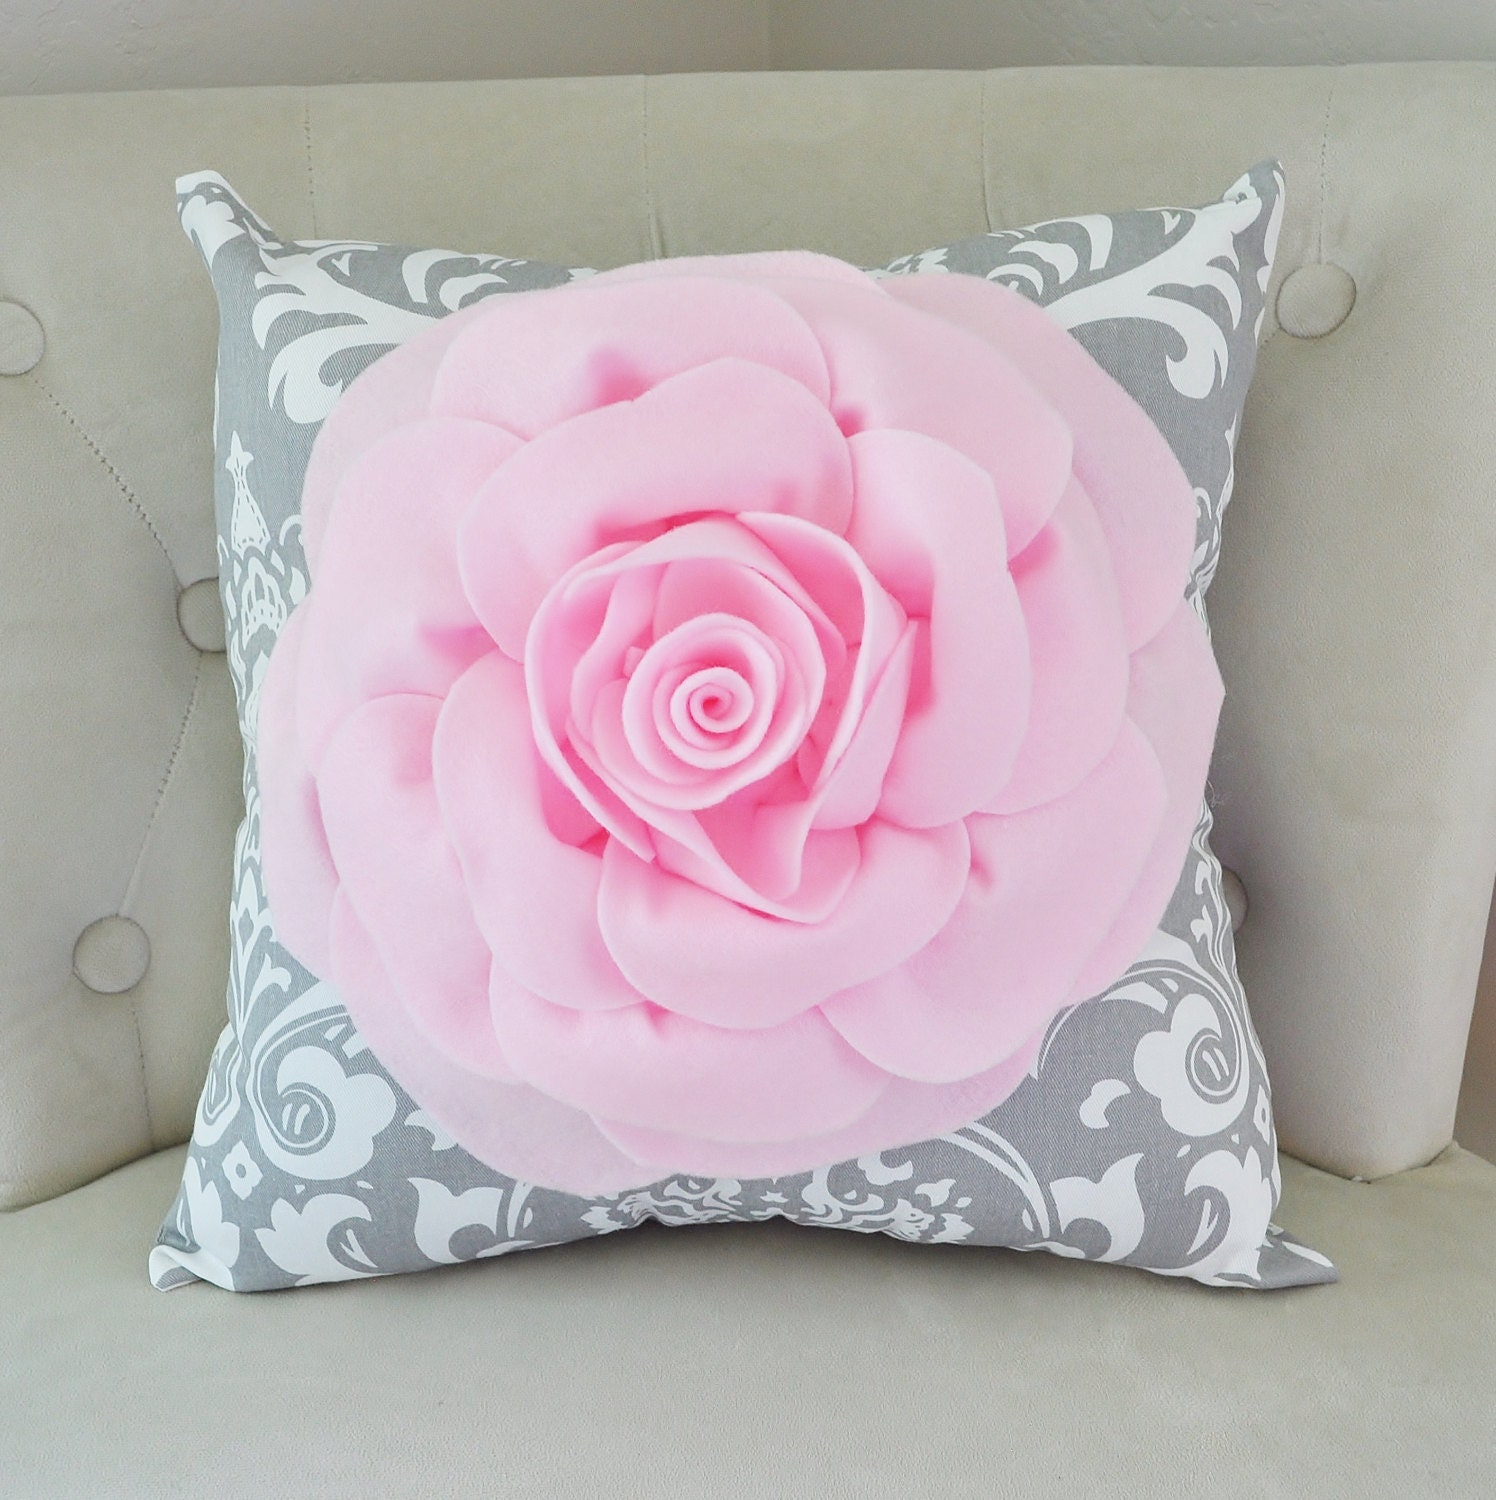 Damask Pillow Light Pink Rose On Gray And White Damask